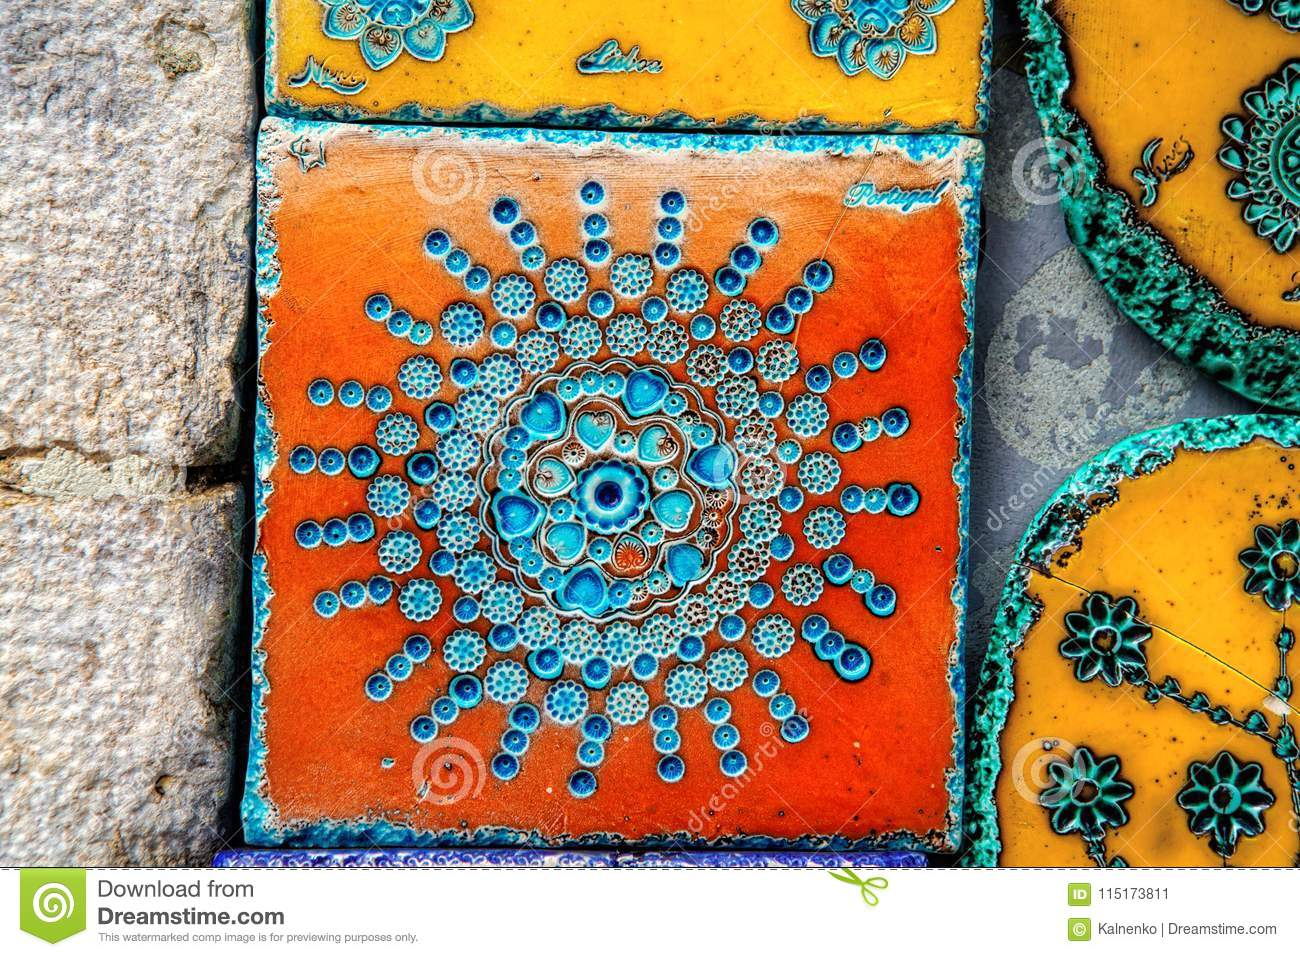 The Portuguese-style Tiles Sold In A Tile Shop. Stock Image - Image ...